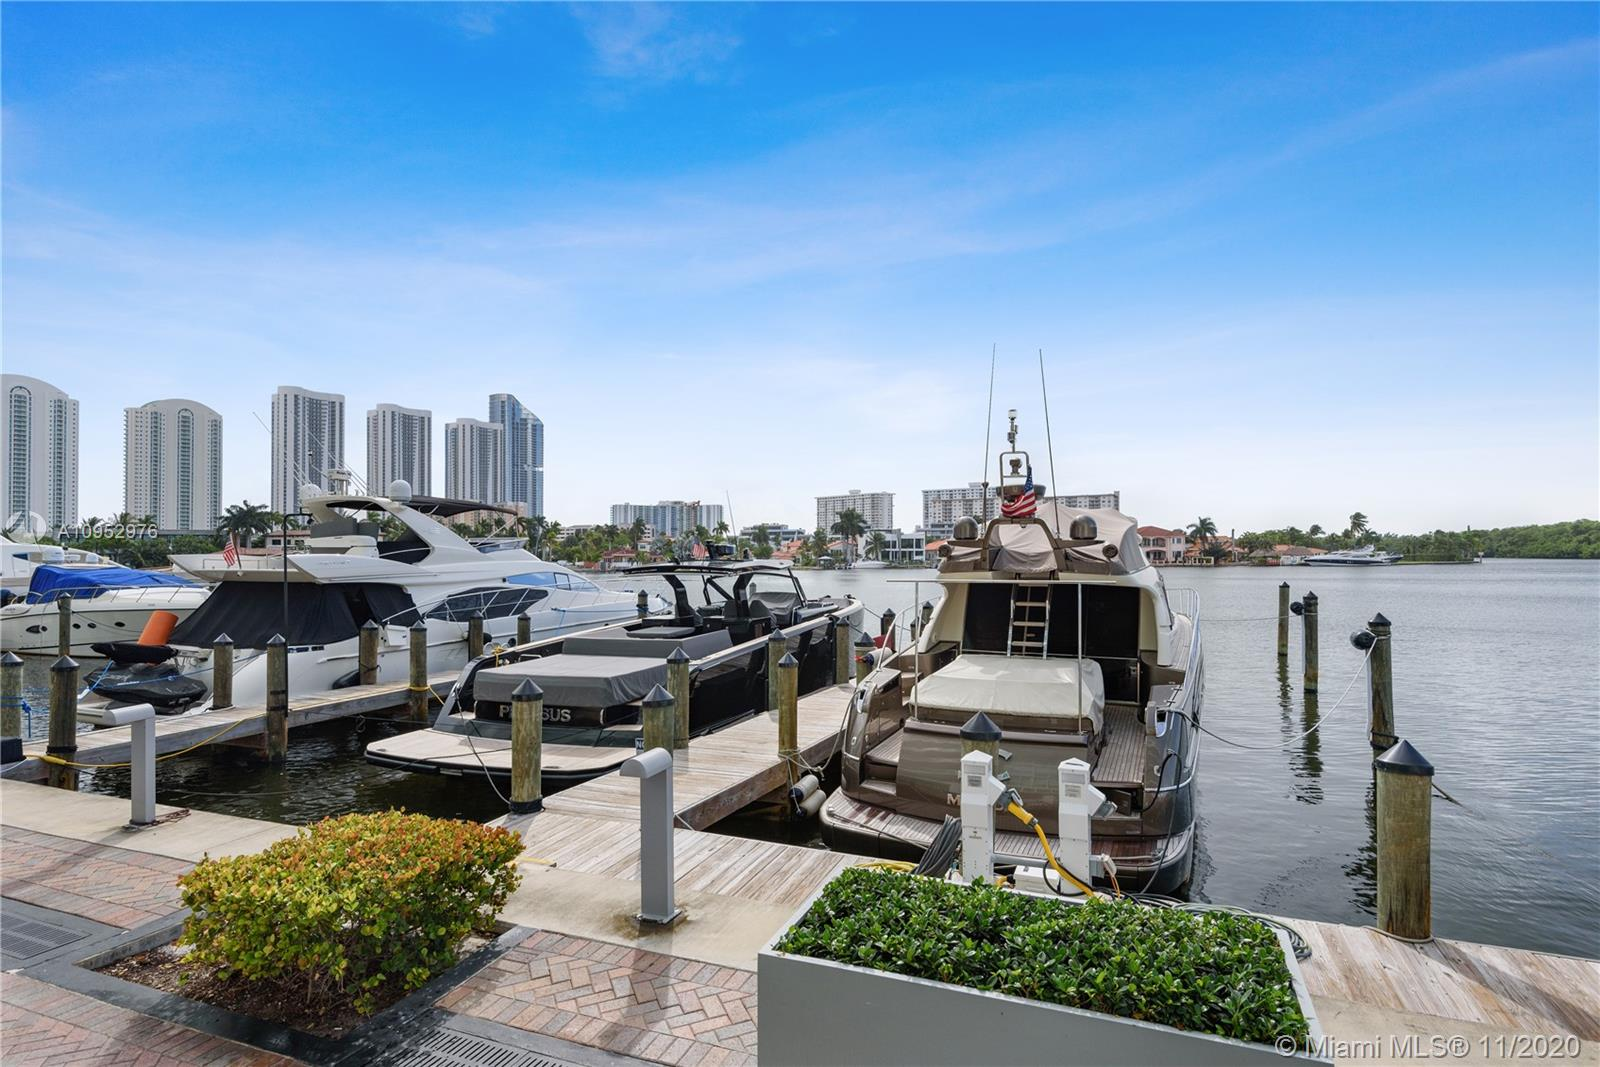 Boat lovers paradise! Enjoy beautiful views of both the marina and bay in this 2 story townhome with 2 bedrooms and 3 full bathrooms. This residence offers a spacious floor plan with marble floors in the living areas and wood styled flooring in the bedrooms. One bedroom and full bathroom are located downstairs and an open kitchen with designer appliances, including Bosch and Leibeher refrigerator. Washer & dryer are located within the unit on the second floor. Balcony overlooking the bay with direct ground floor access to marina. Building amenities include fitness center, spa, resort style heated pool, tennis courts, café & bar, 24 hour valet and lobby attendant. Marina Spaces available for rent. 1 Assigned parking space (#2052). Please add unit staged by Studio Kaza